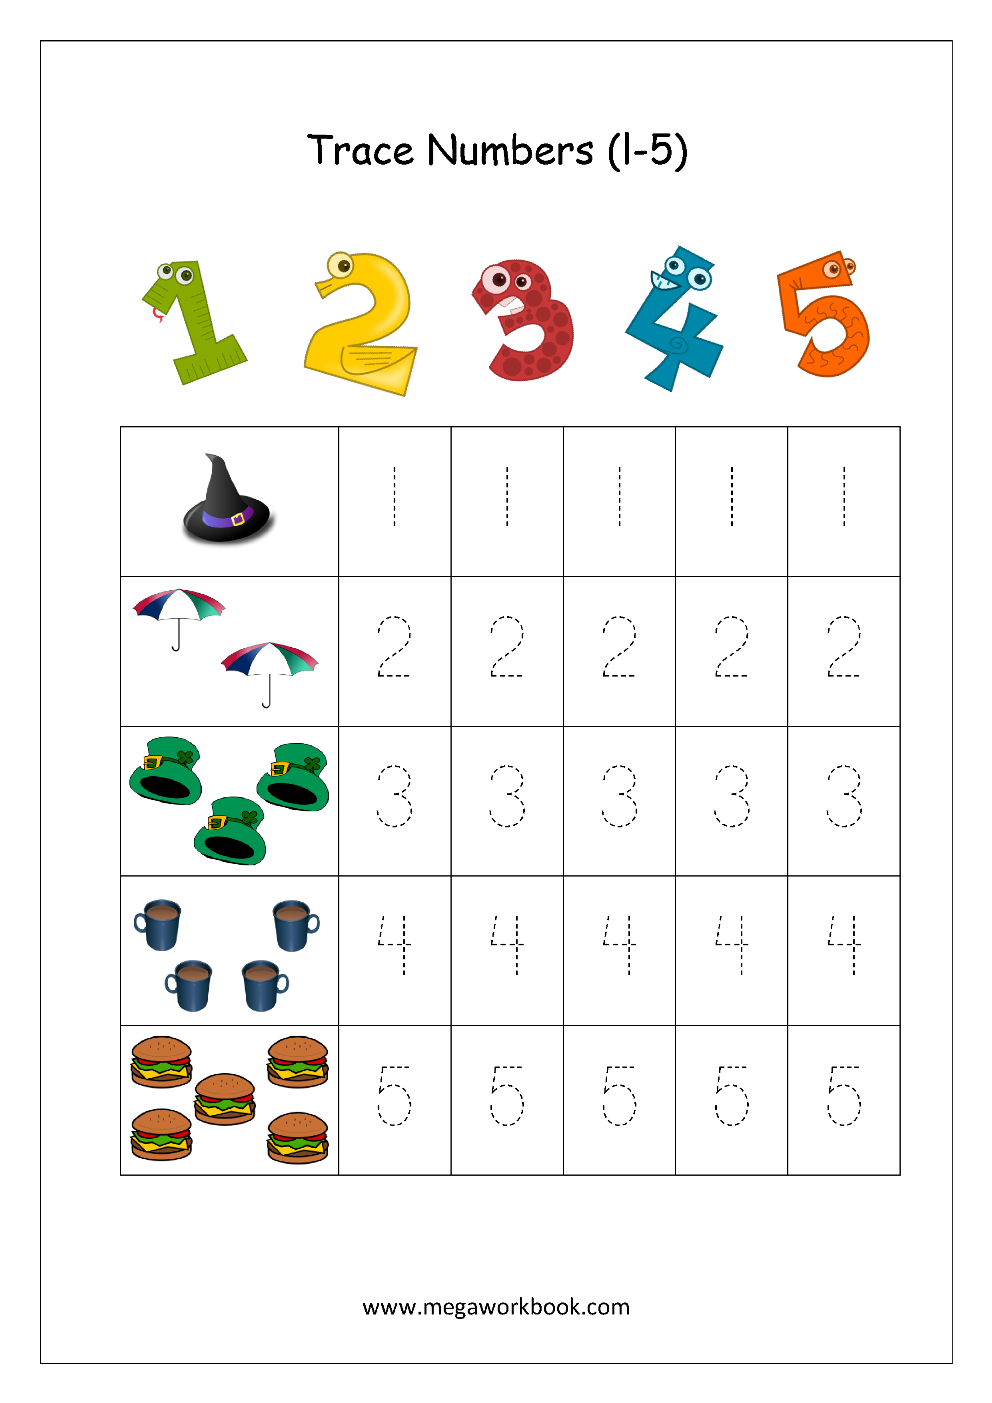 Number Tracing - Tracing Numbers - Number Tracing Worksheets with Letter 5 Tracing